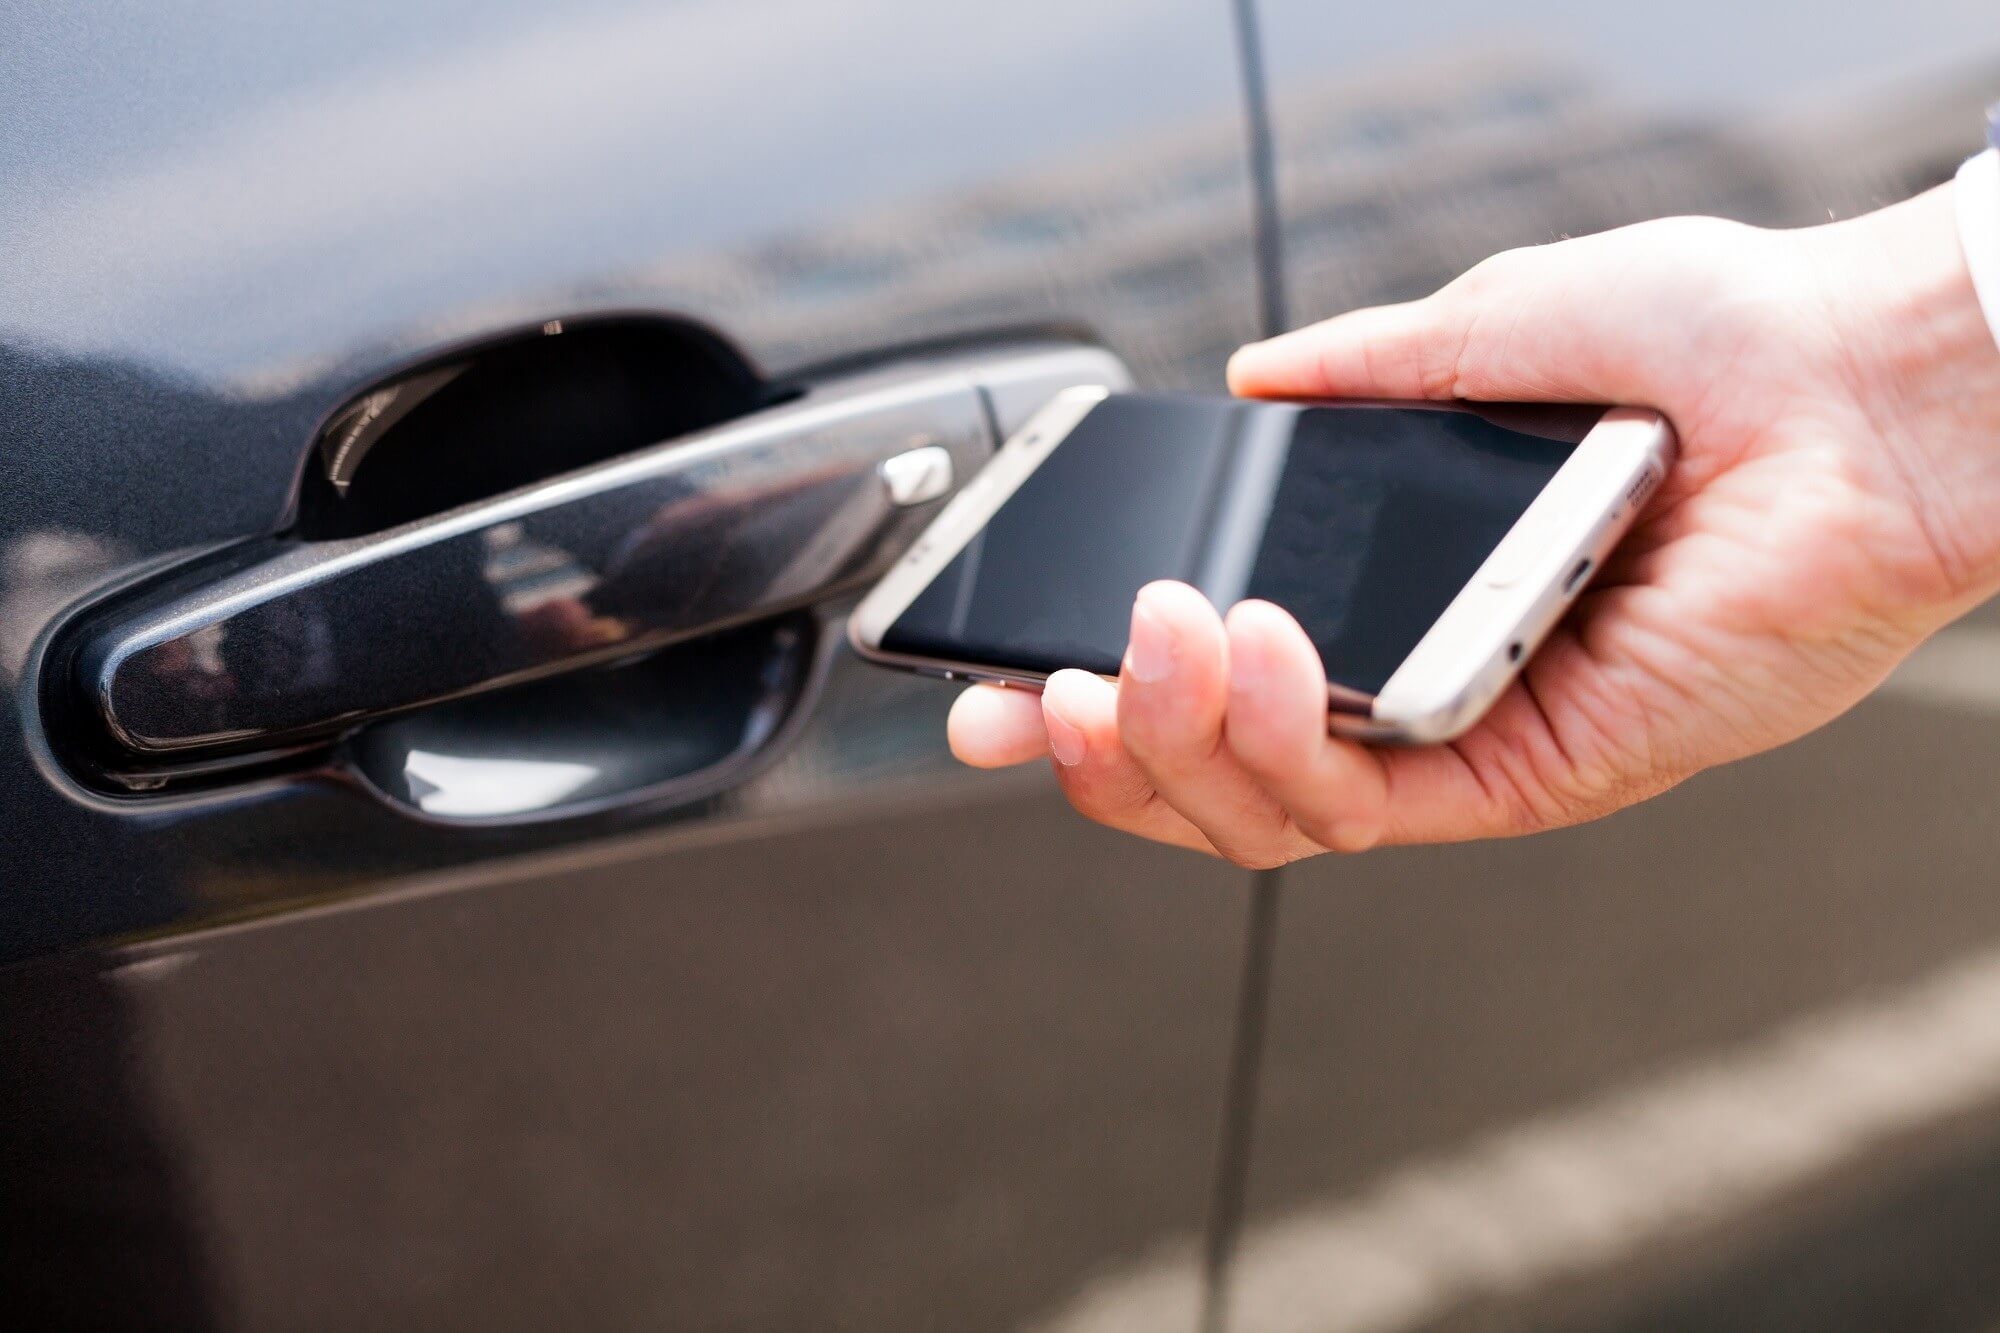 iPhones and Apple Watches could soon replace your car keys